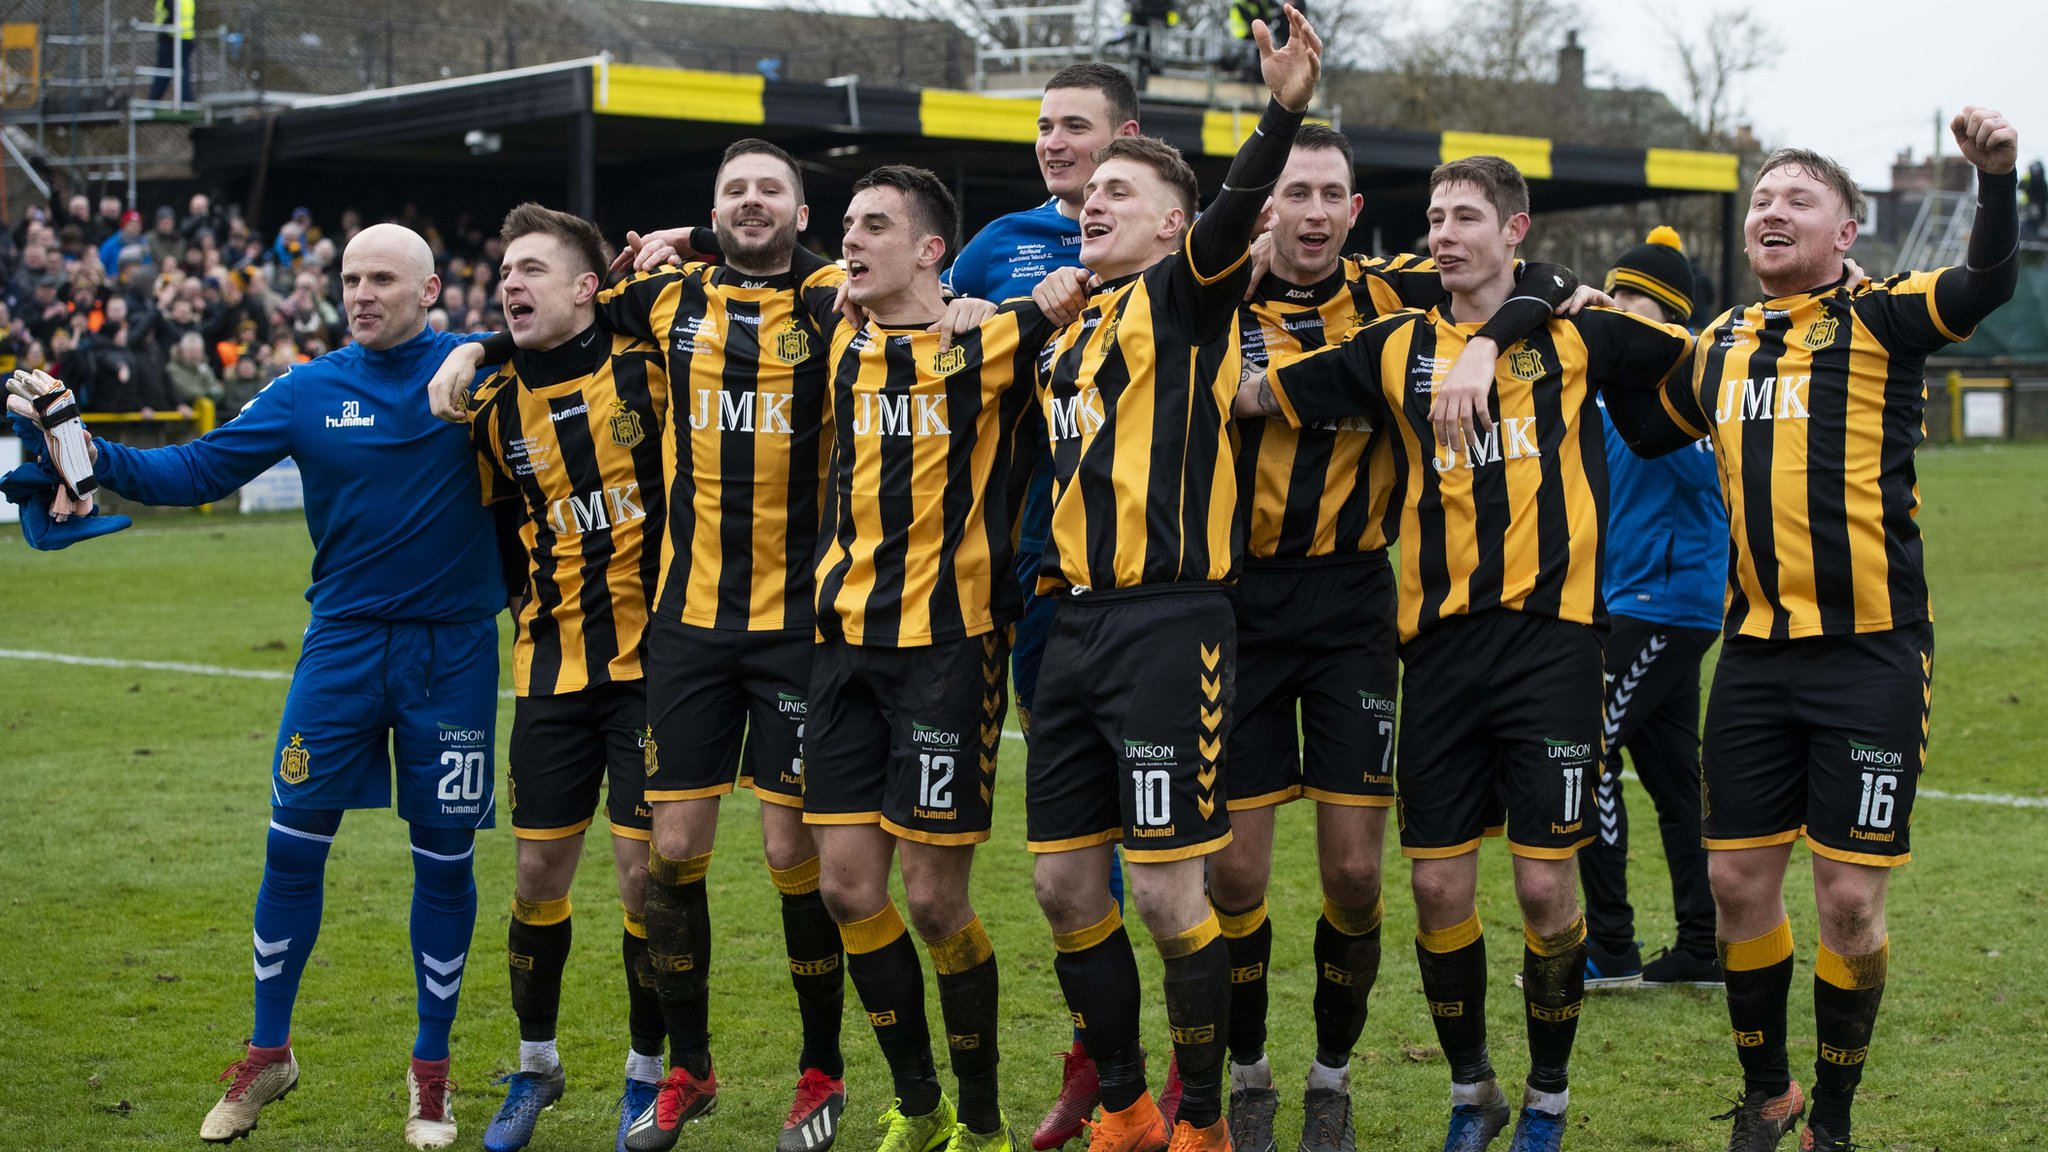 Scottish Cup: Auchinleck Talbot draw Hearts in last 16